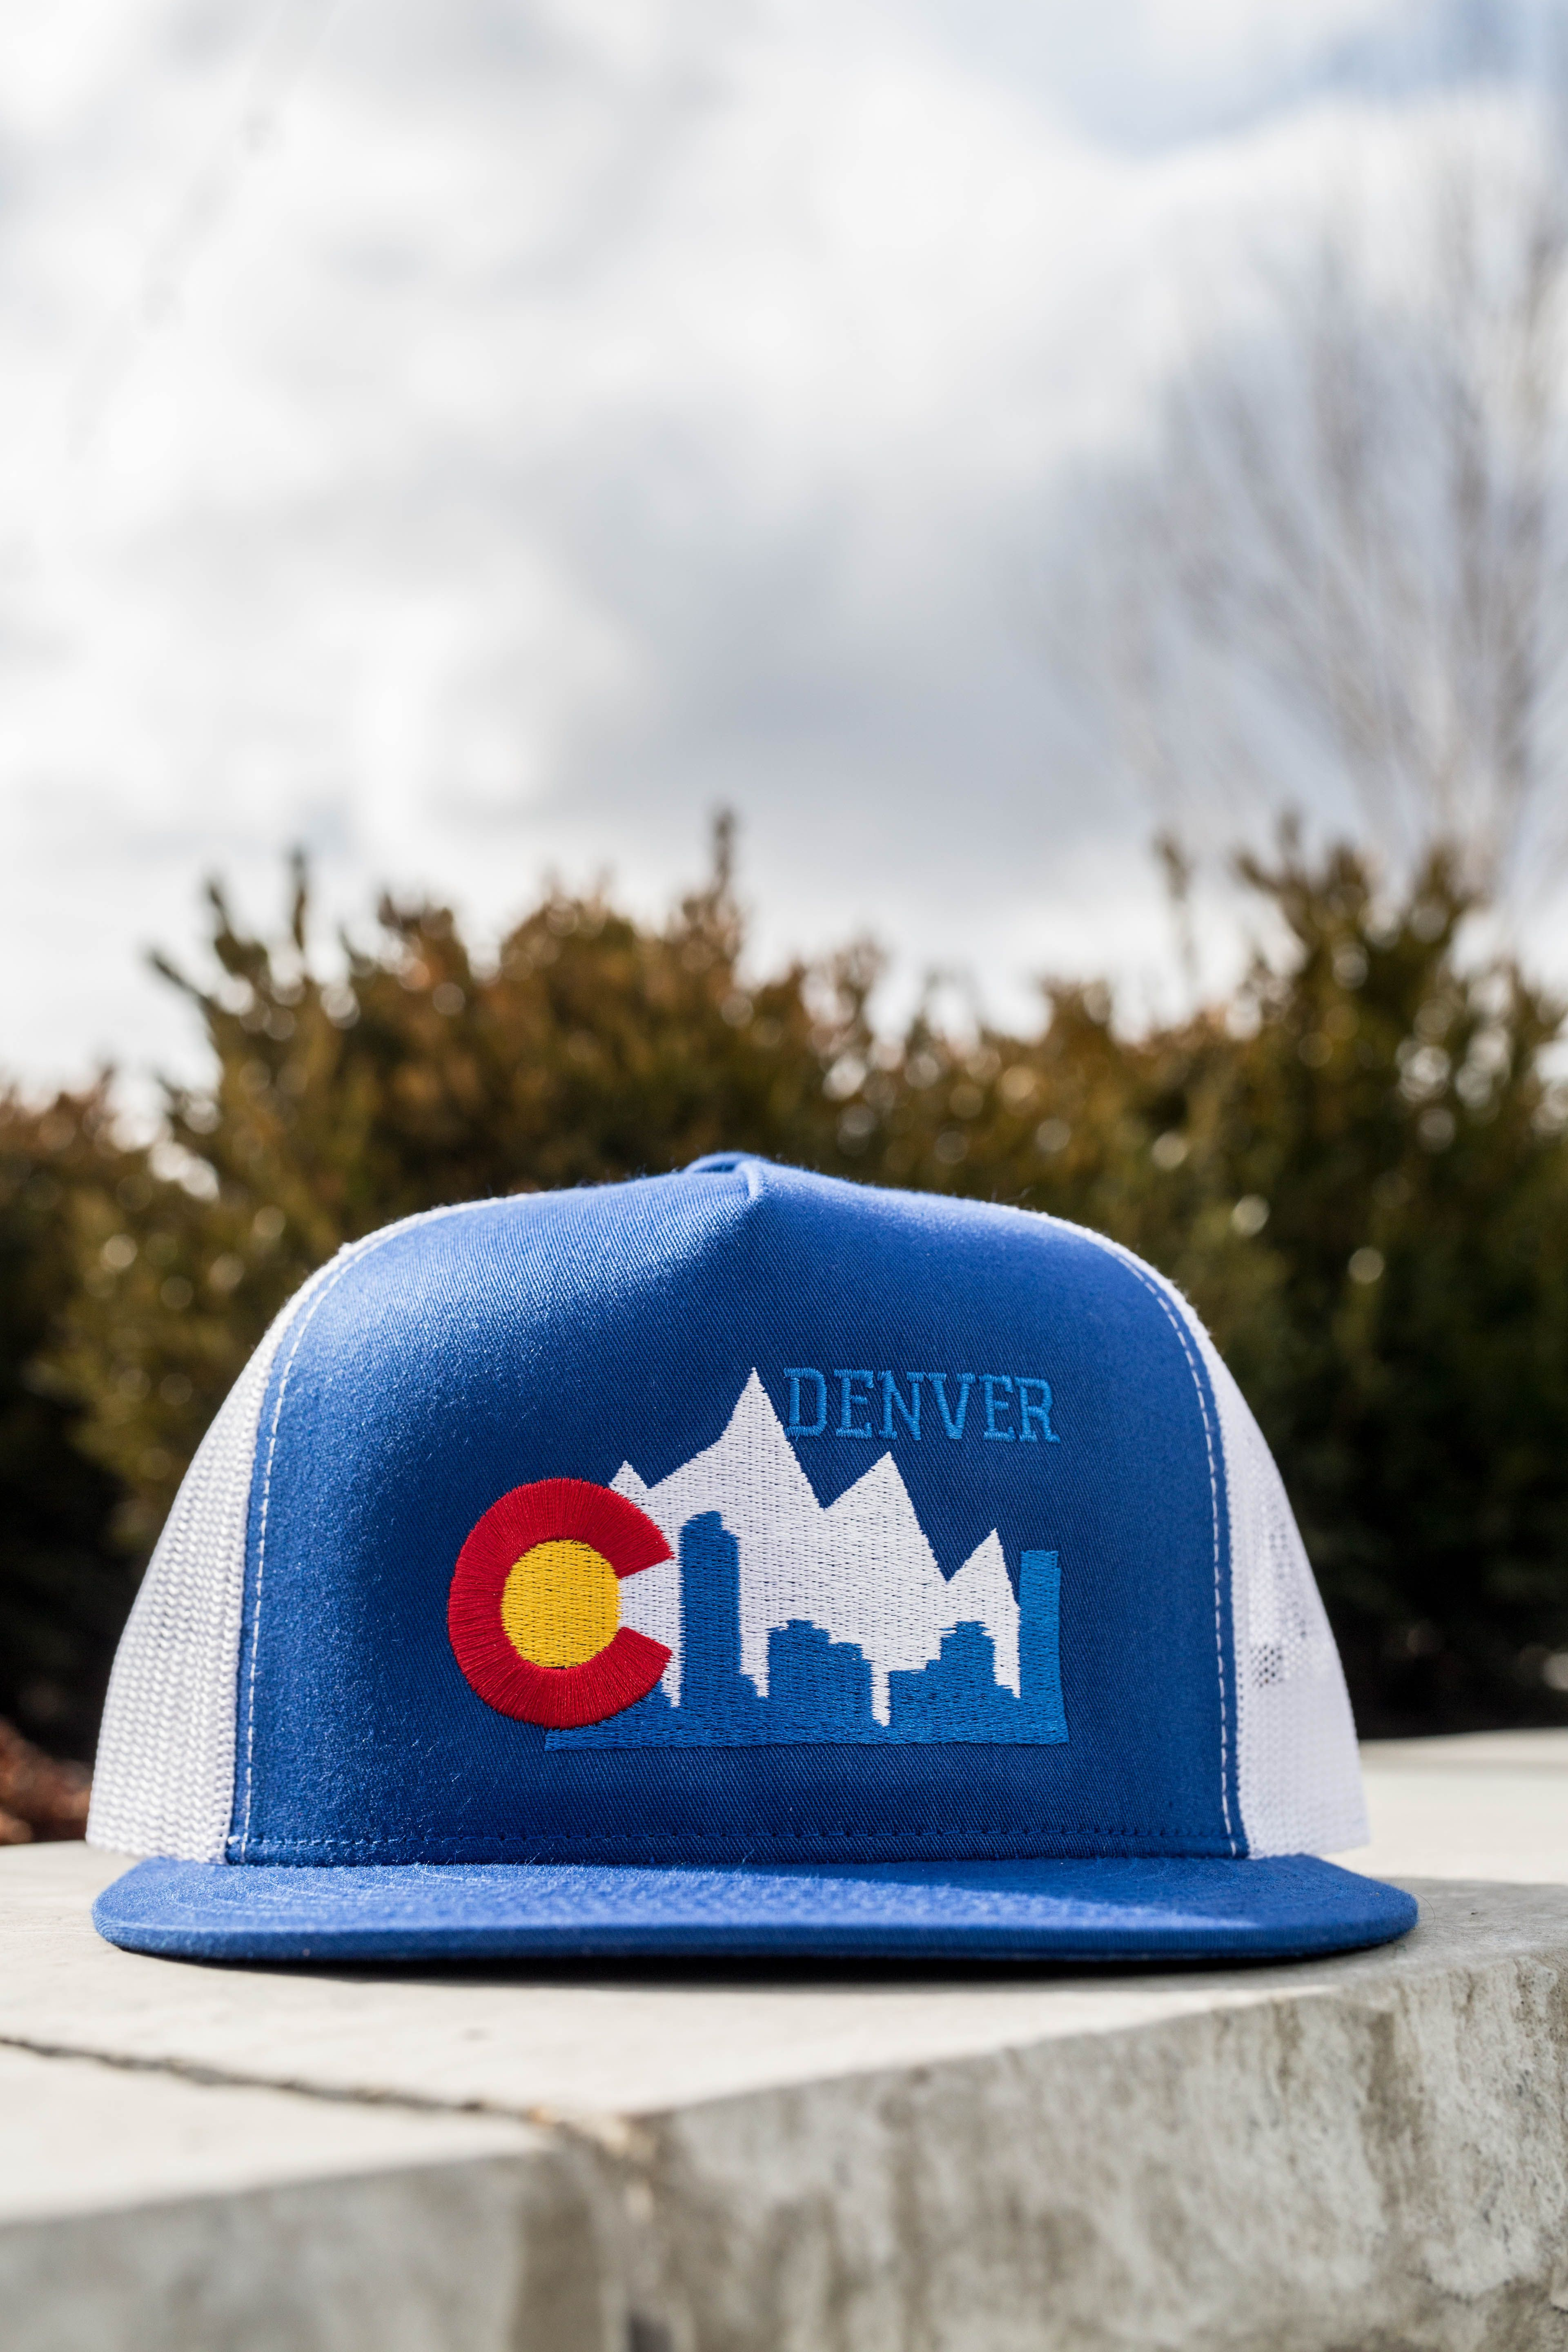 Rep Your Town With A Custom Design From Our City Collection We Love This Denver Custom Trucker Hat That Shows Off The Sky Custom Trucker Hats Custom Hats Hats